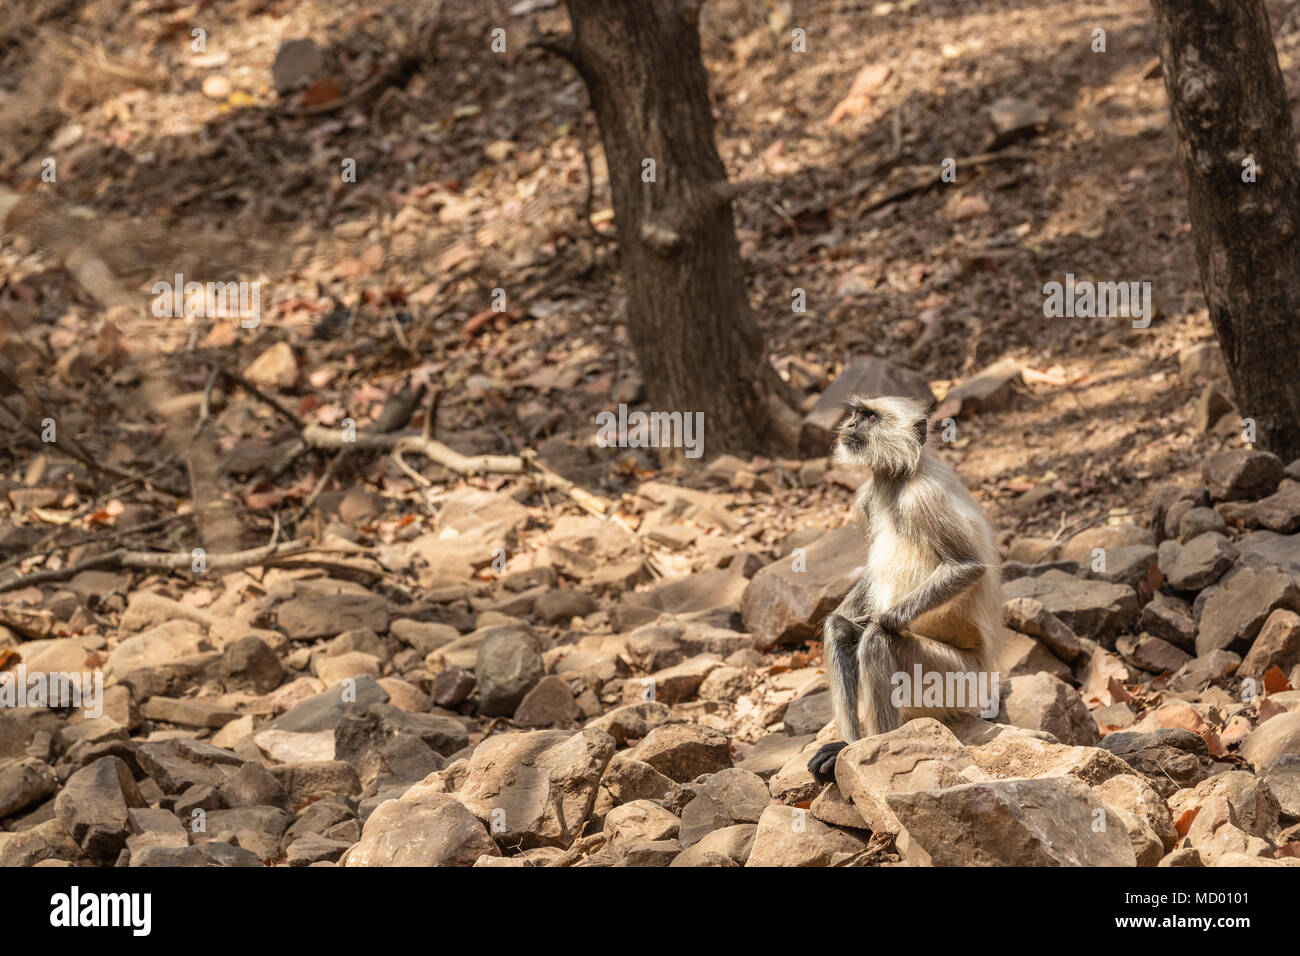 Elderly grey langur (Semnopithecus entellus), an old world monkey, sitting on rocks in Ranthambore National Park, Rajasthan, northern India - Stock Image